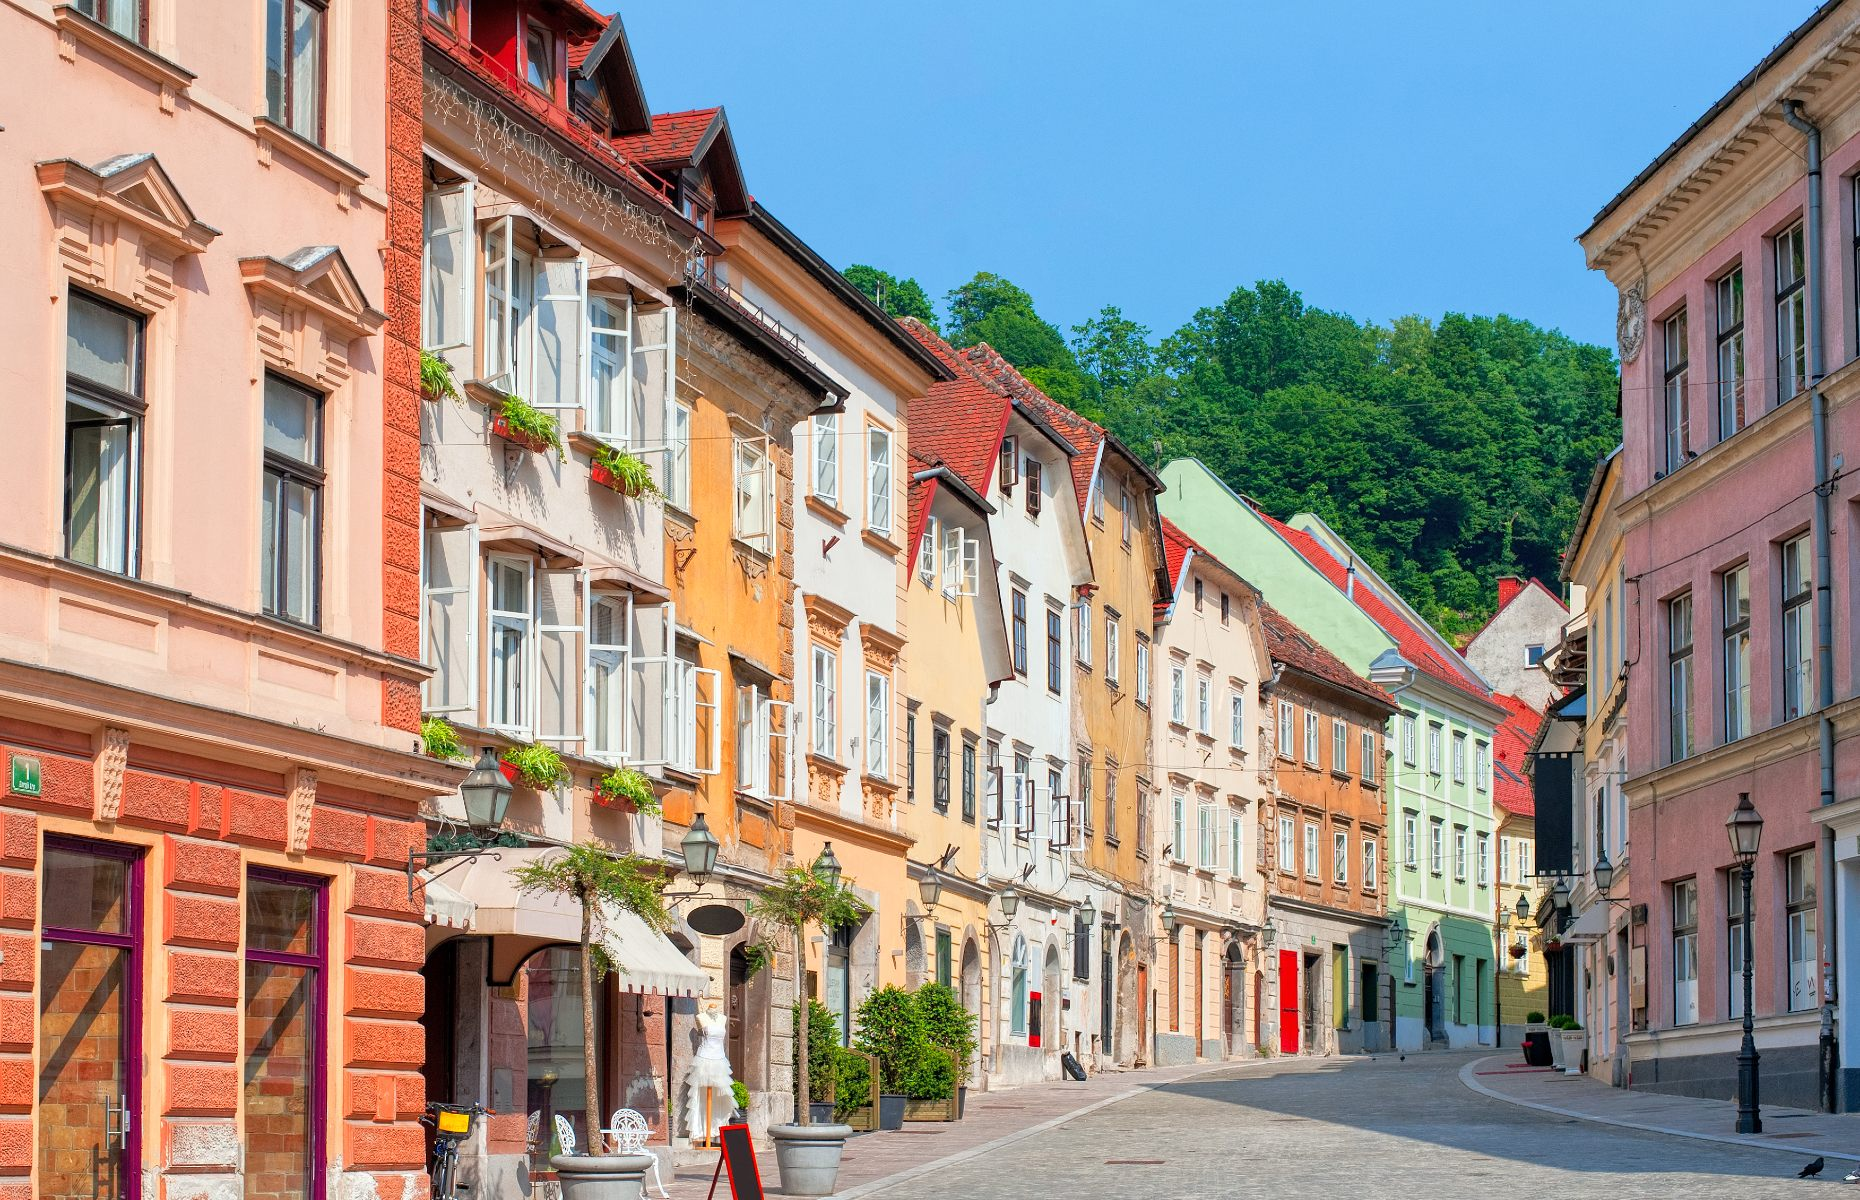 View of the Old Town (Image: Boris Stroujko/Shutterstock)